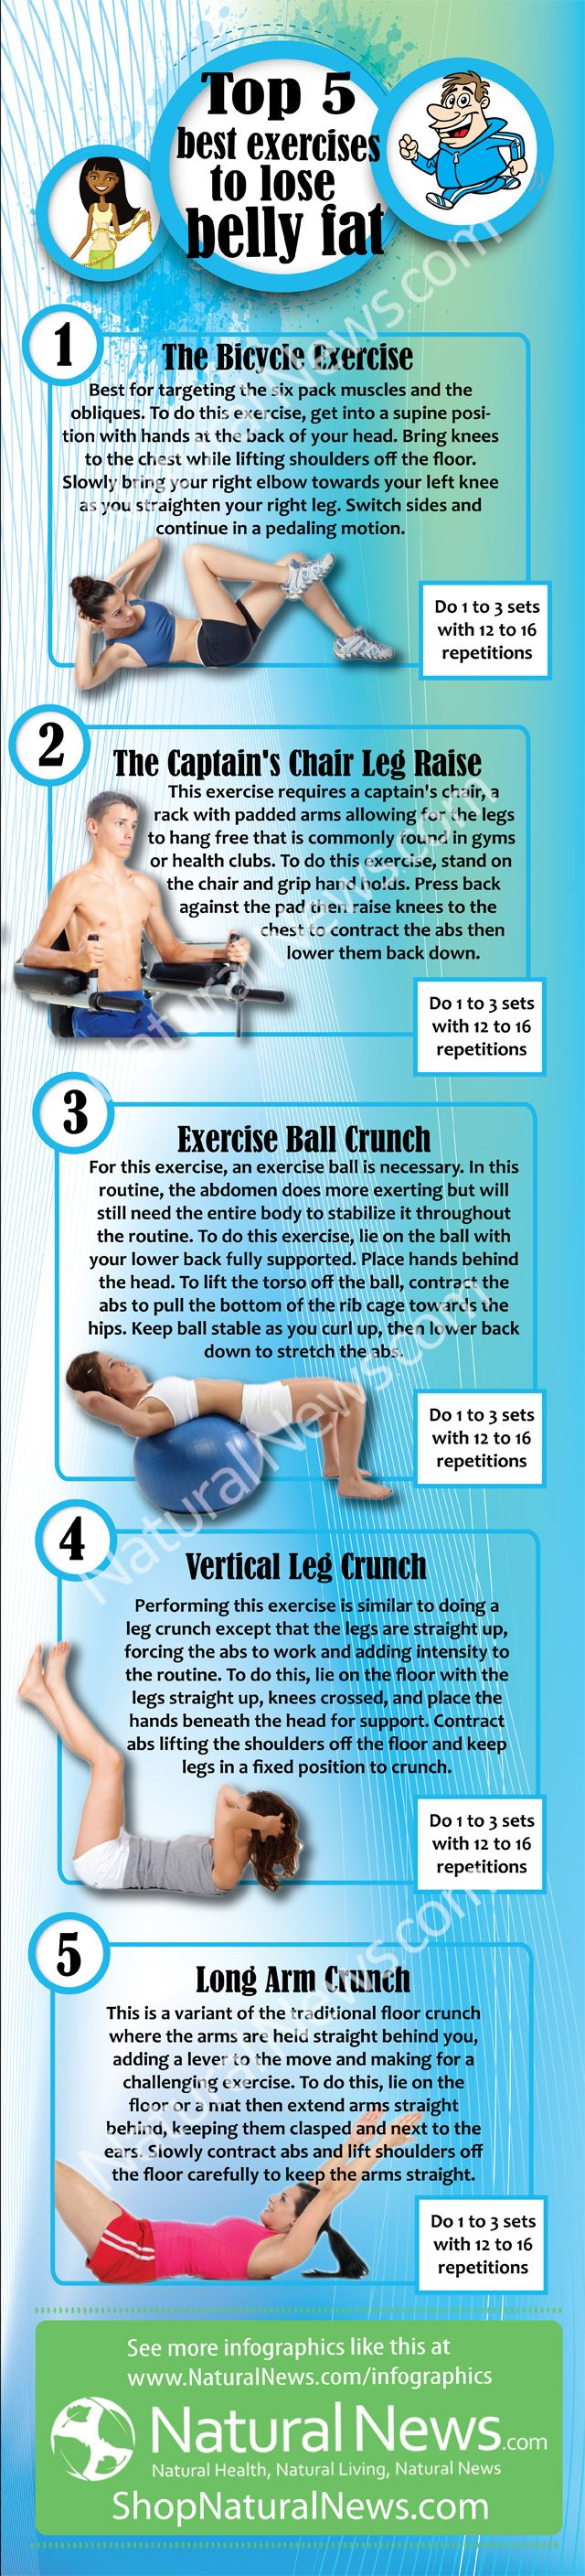 Captains chair leg raise muscles worked - 25 Best Ab Exercise Equipment Ideas On Pinterest Stomach Workouts Abs Workout Routines And Tummy Workout